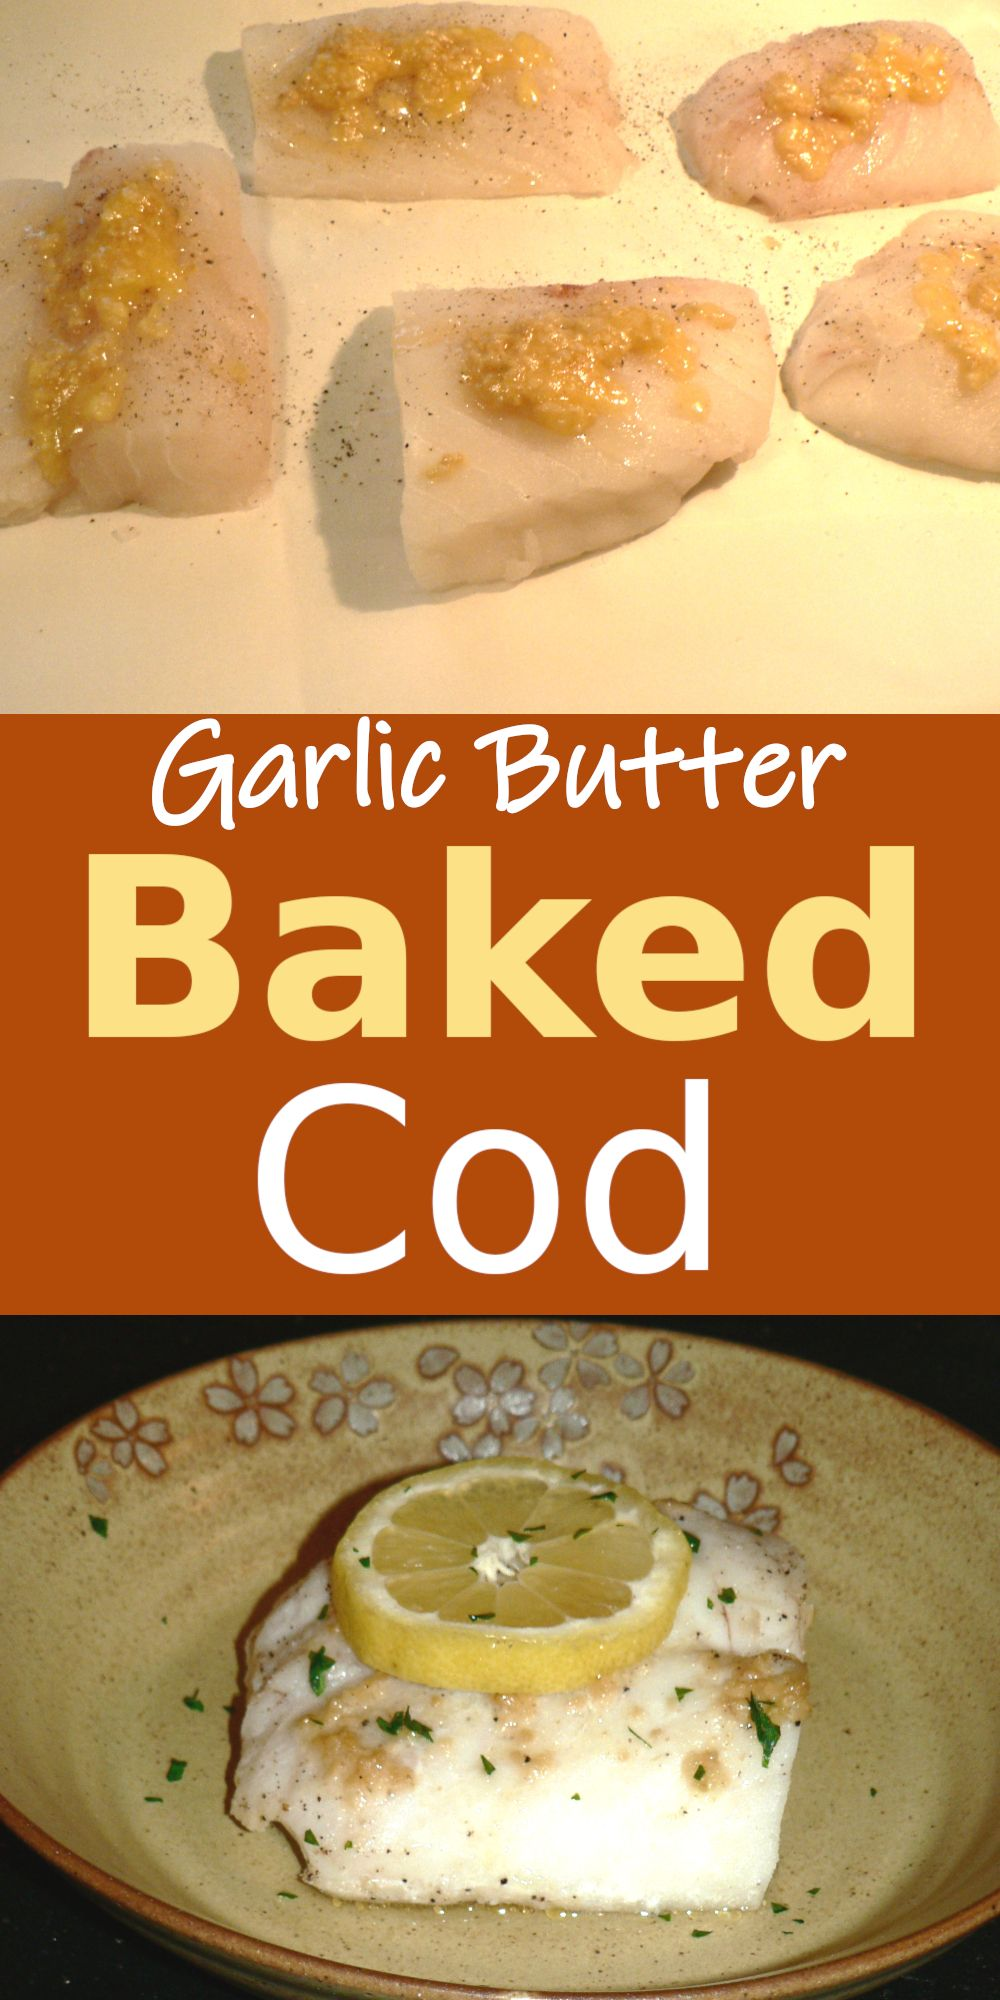 Garlic butter baked cod, best oven baked cod recipe. You will love this easy oven baked cod fish recipe. CLICK to find out how to bake cod in oven